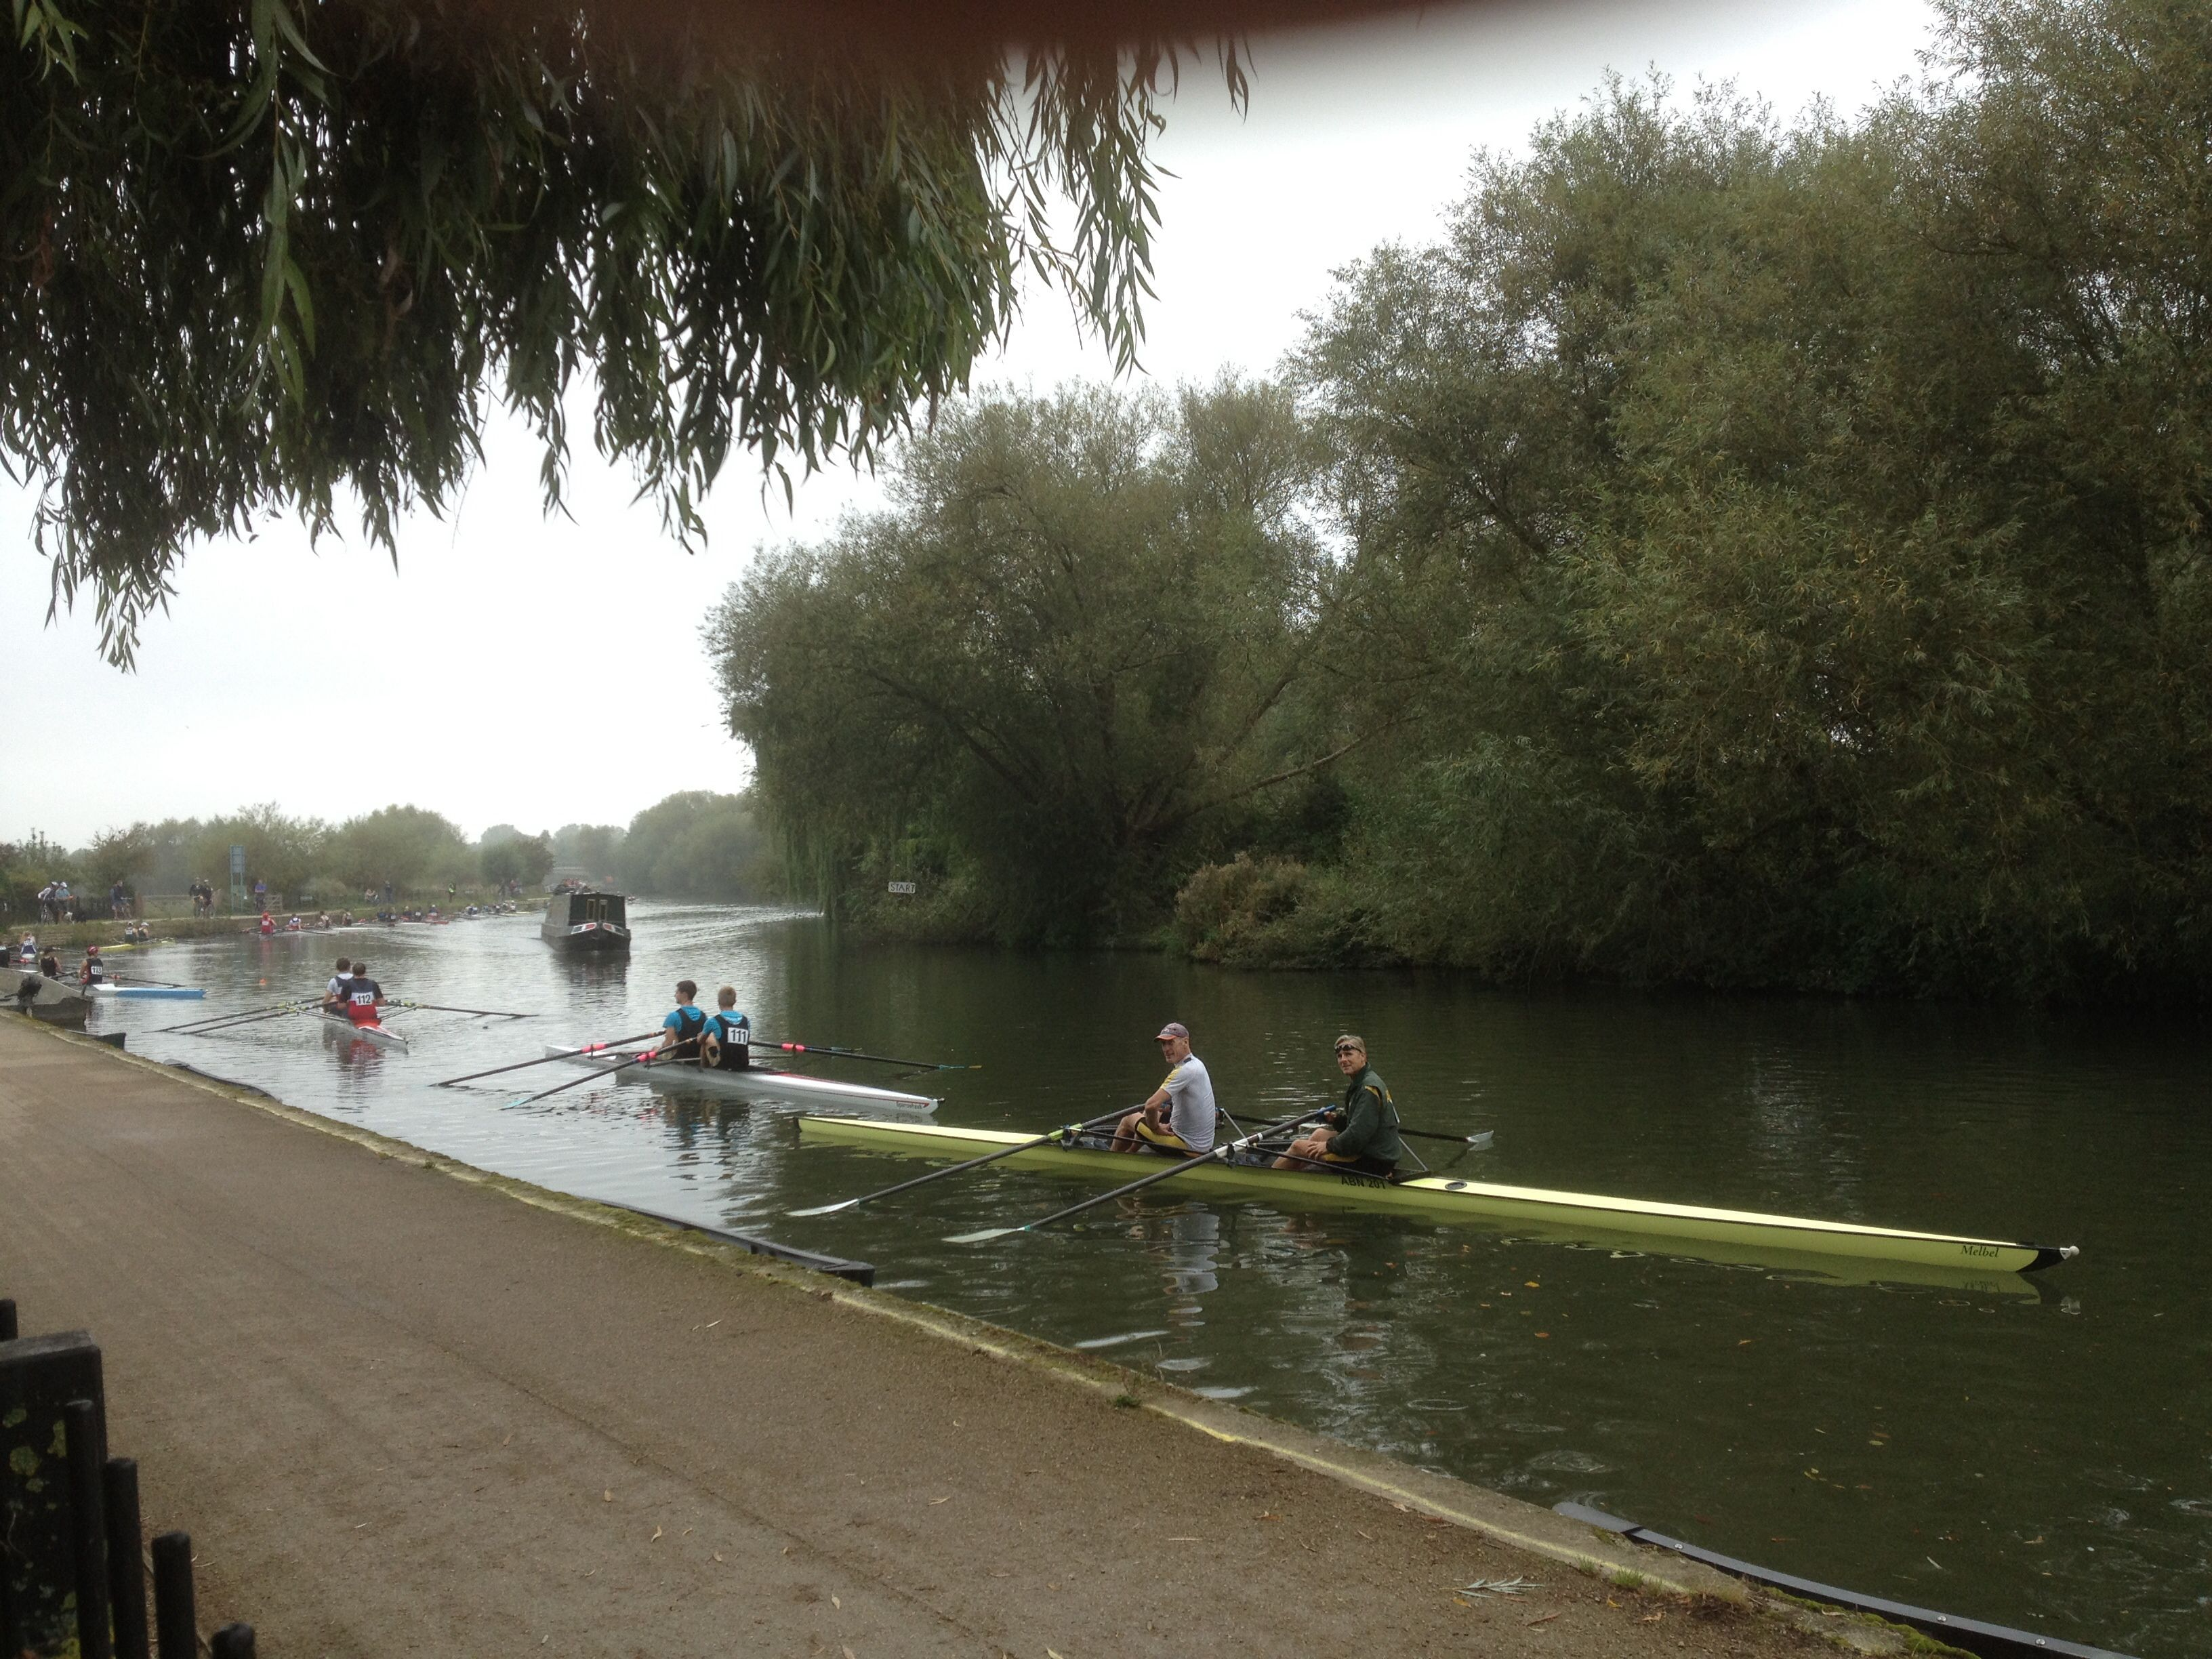 Isis Farmhouse Oxford Abingdon Rowing Club Double Scull Just About To Start In The Isis